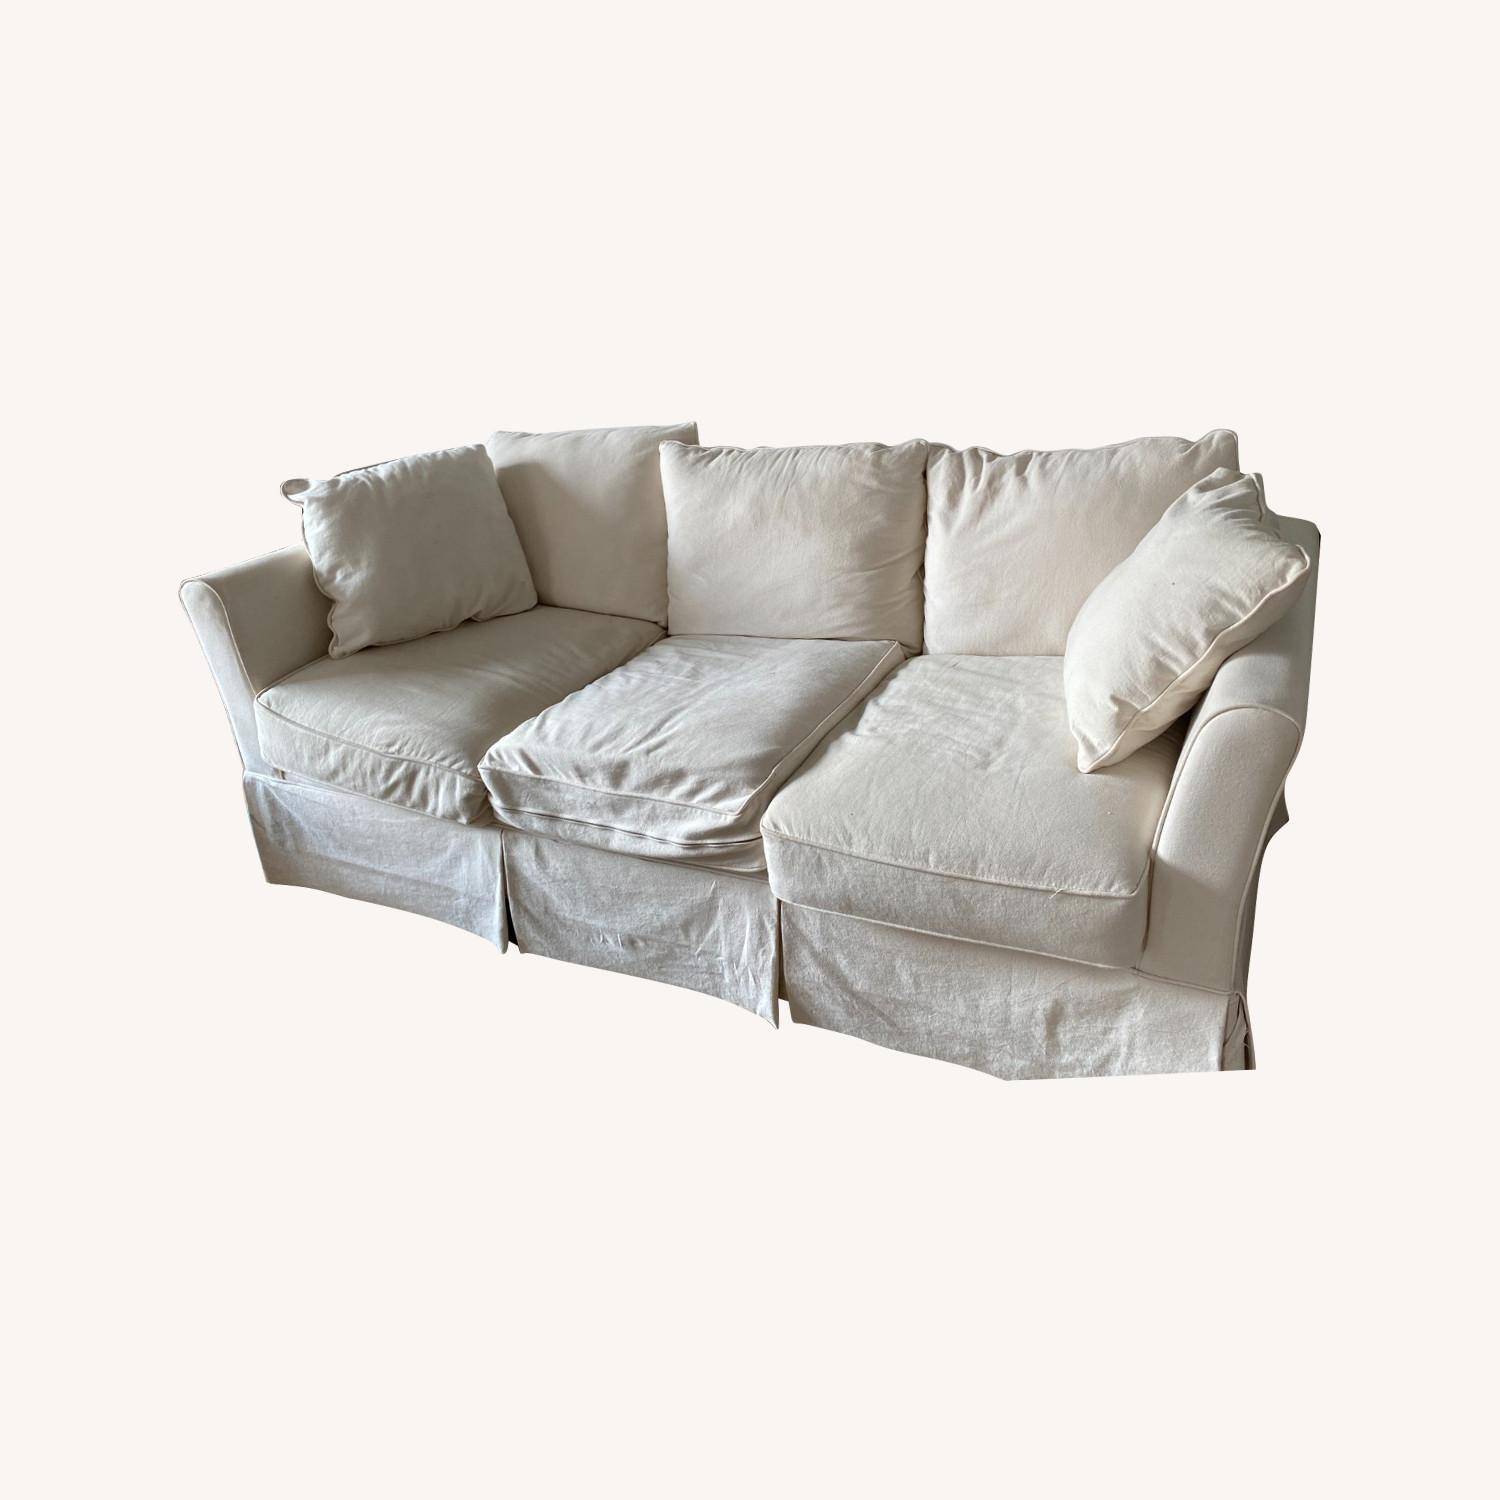 Wayfair Shelby Sofa - image-0